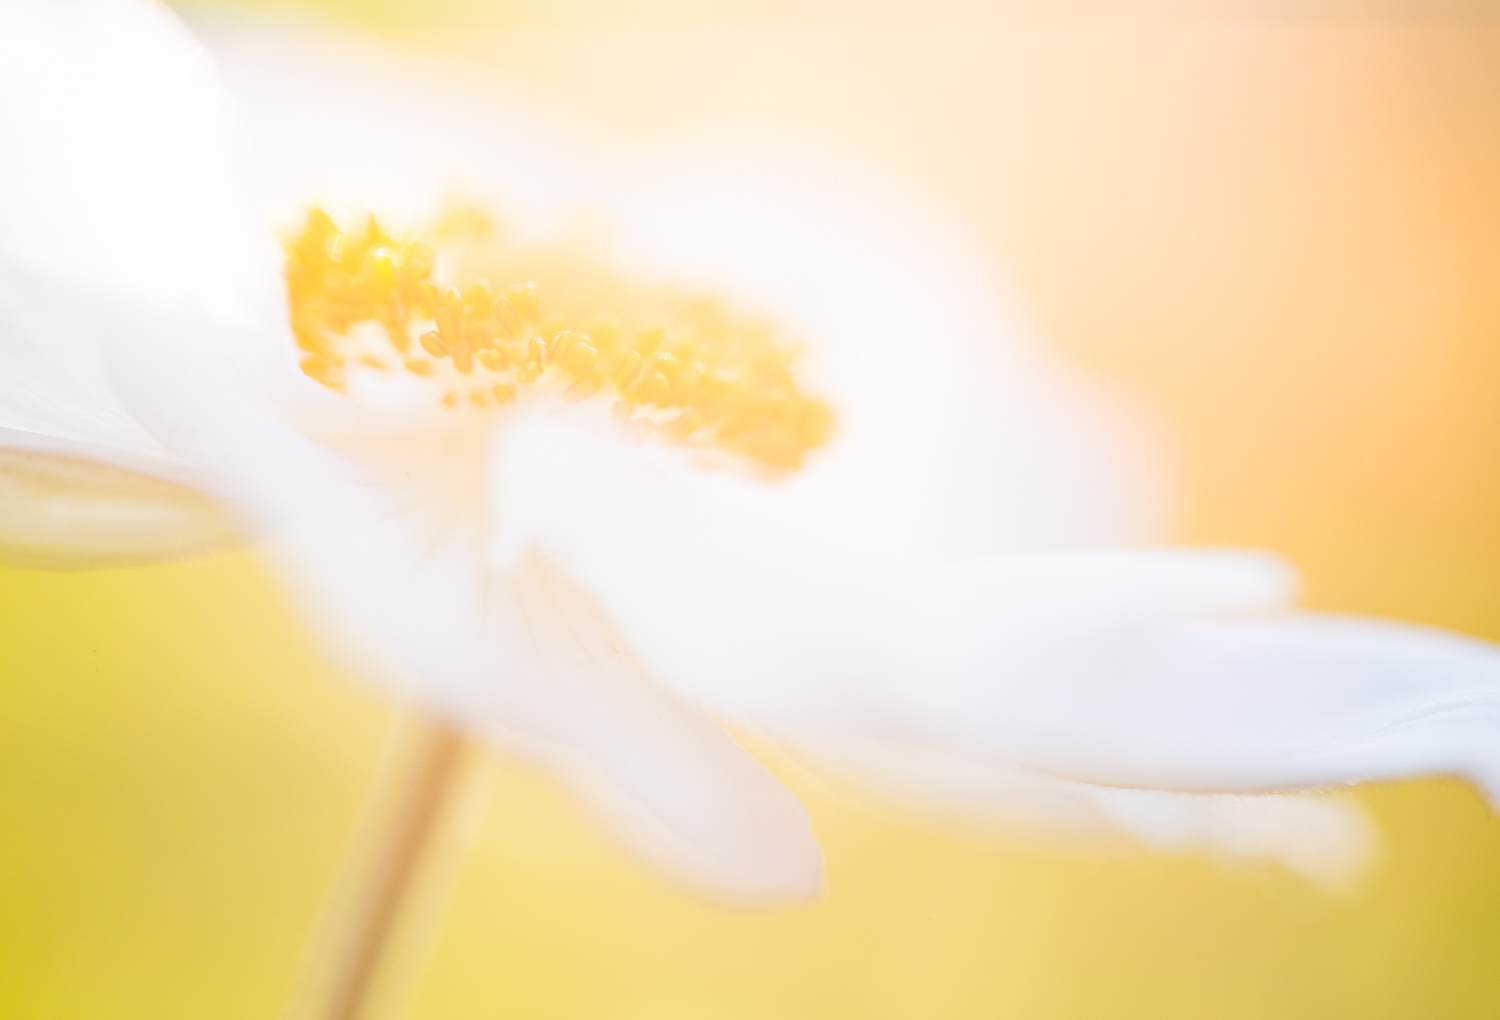 Macro shot of a flower in bright light